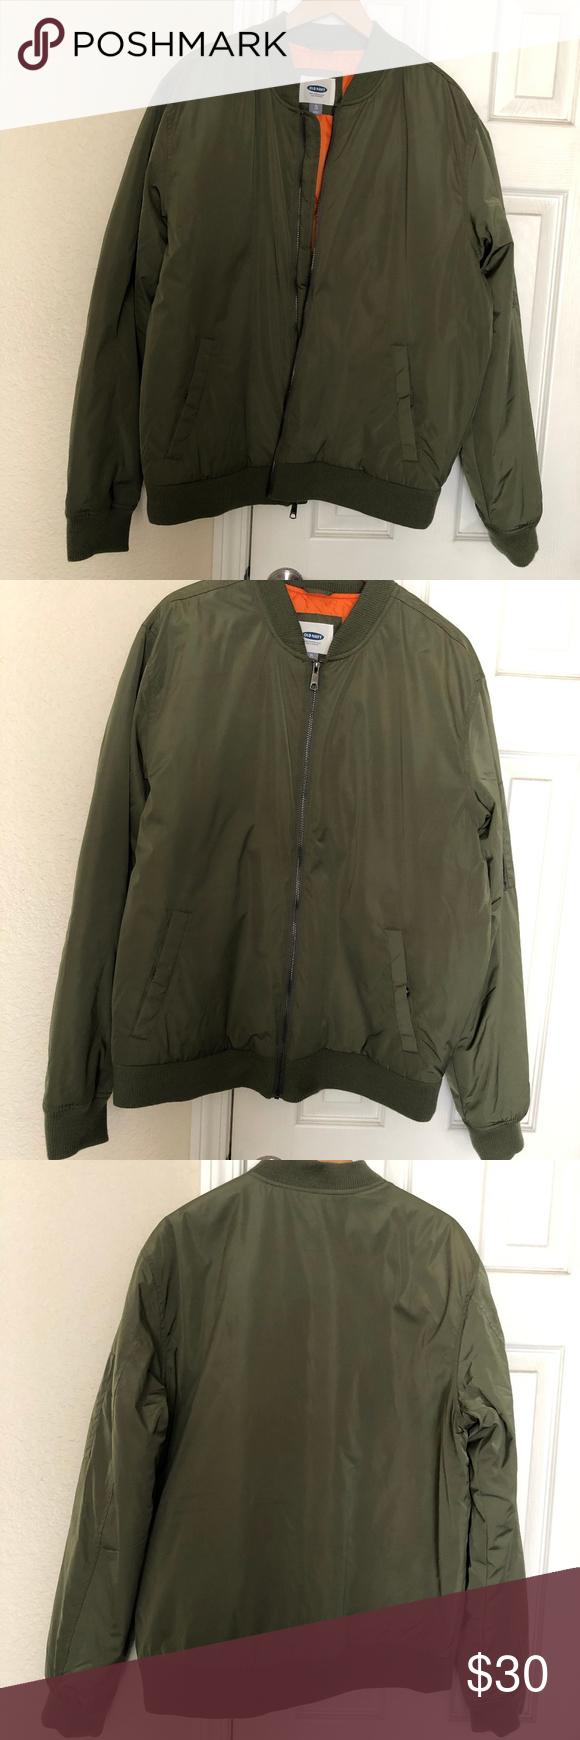 Men S Old Navy Green Bomber Jacket Men S Old Navy Green Bombet Jacket With Pockets And Zippered Pock Green Bomber Jacket Men Green Bomber Jacket Navy And Green [ 1740 x 580 Pixel ]